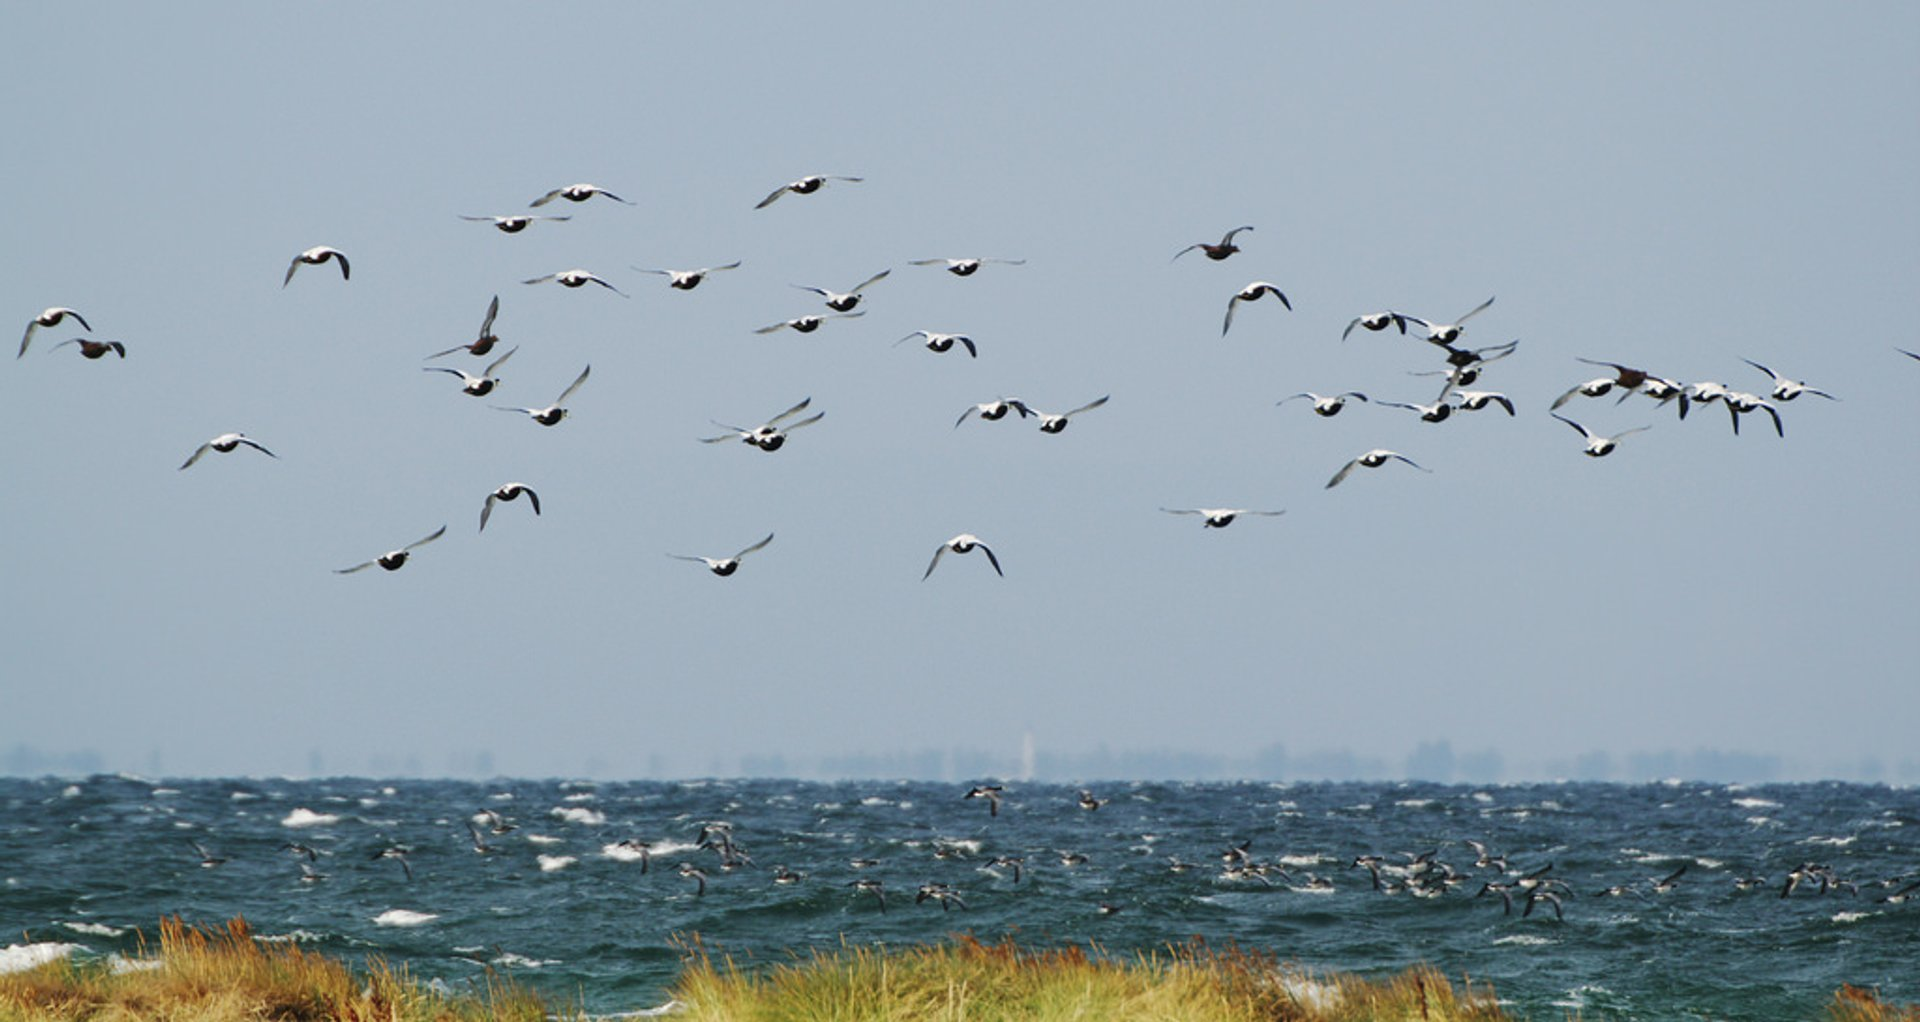 Migrating Birds at Falsterbo in Sweden - Best Season